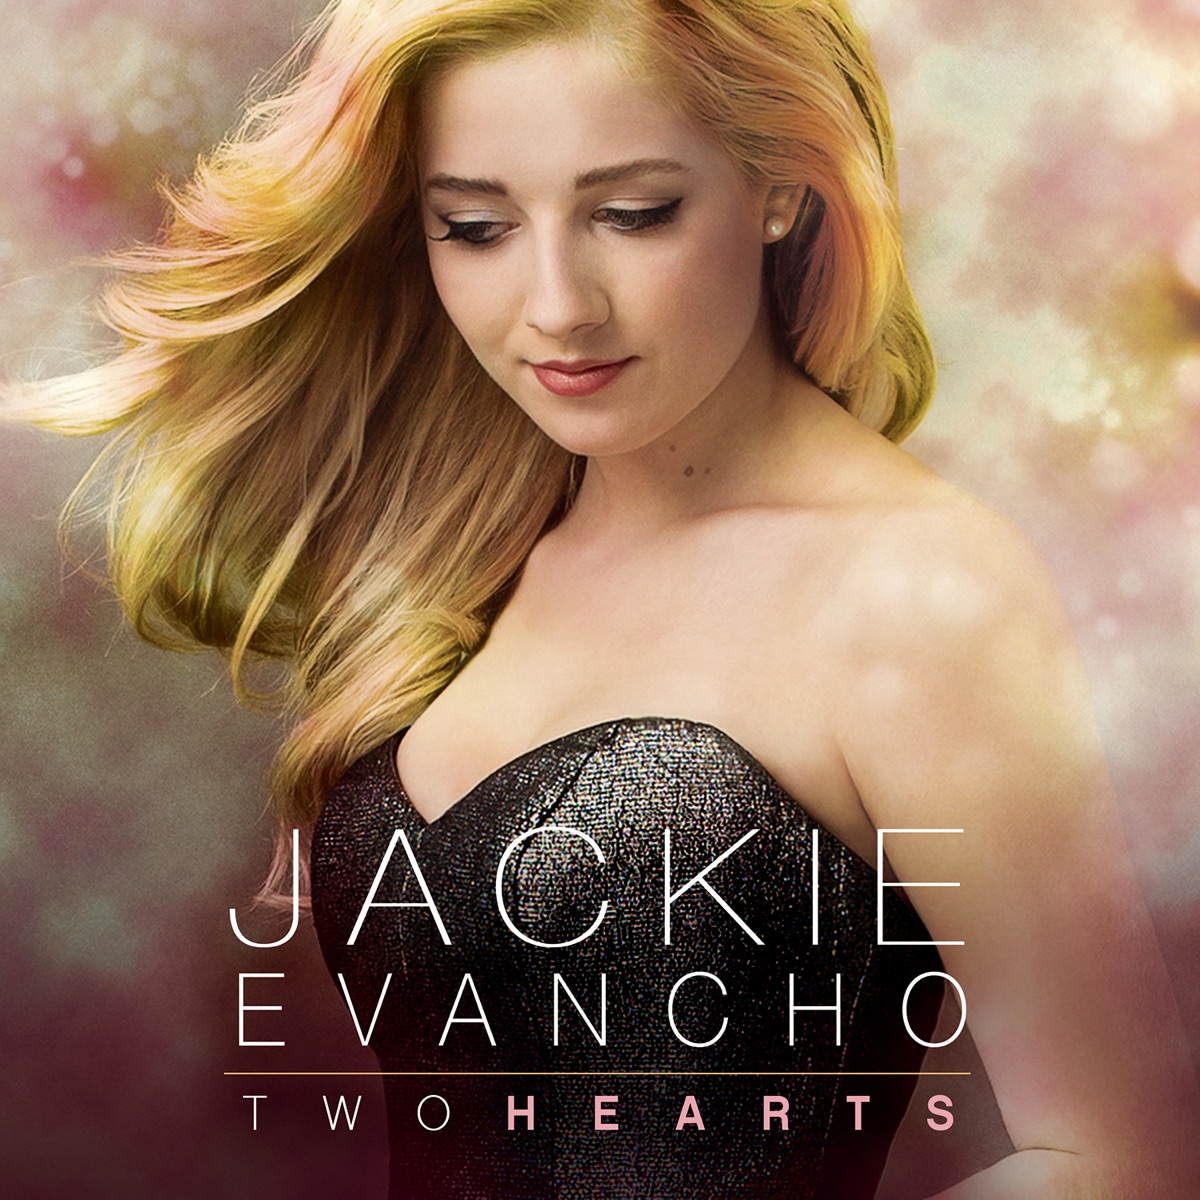 Two Hearts Jackie Evancho CD cover